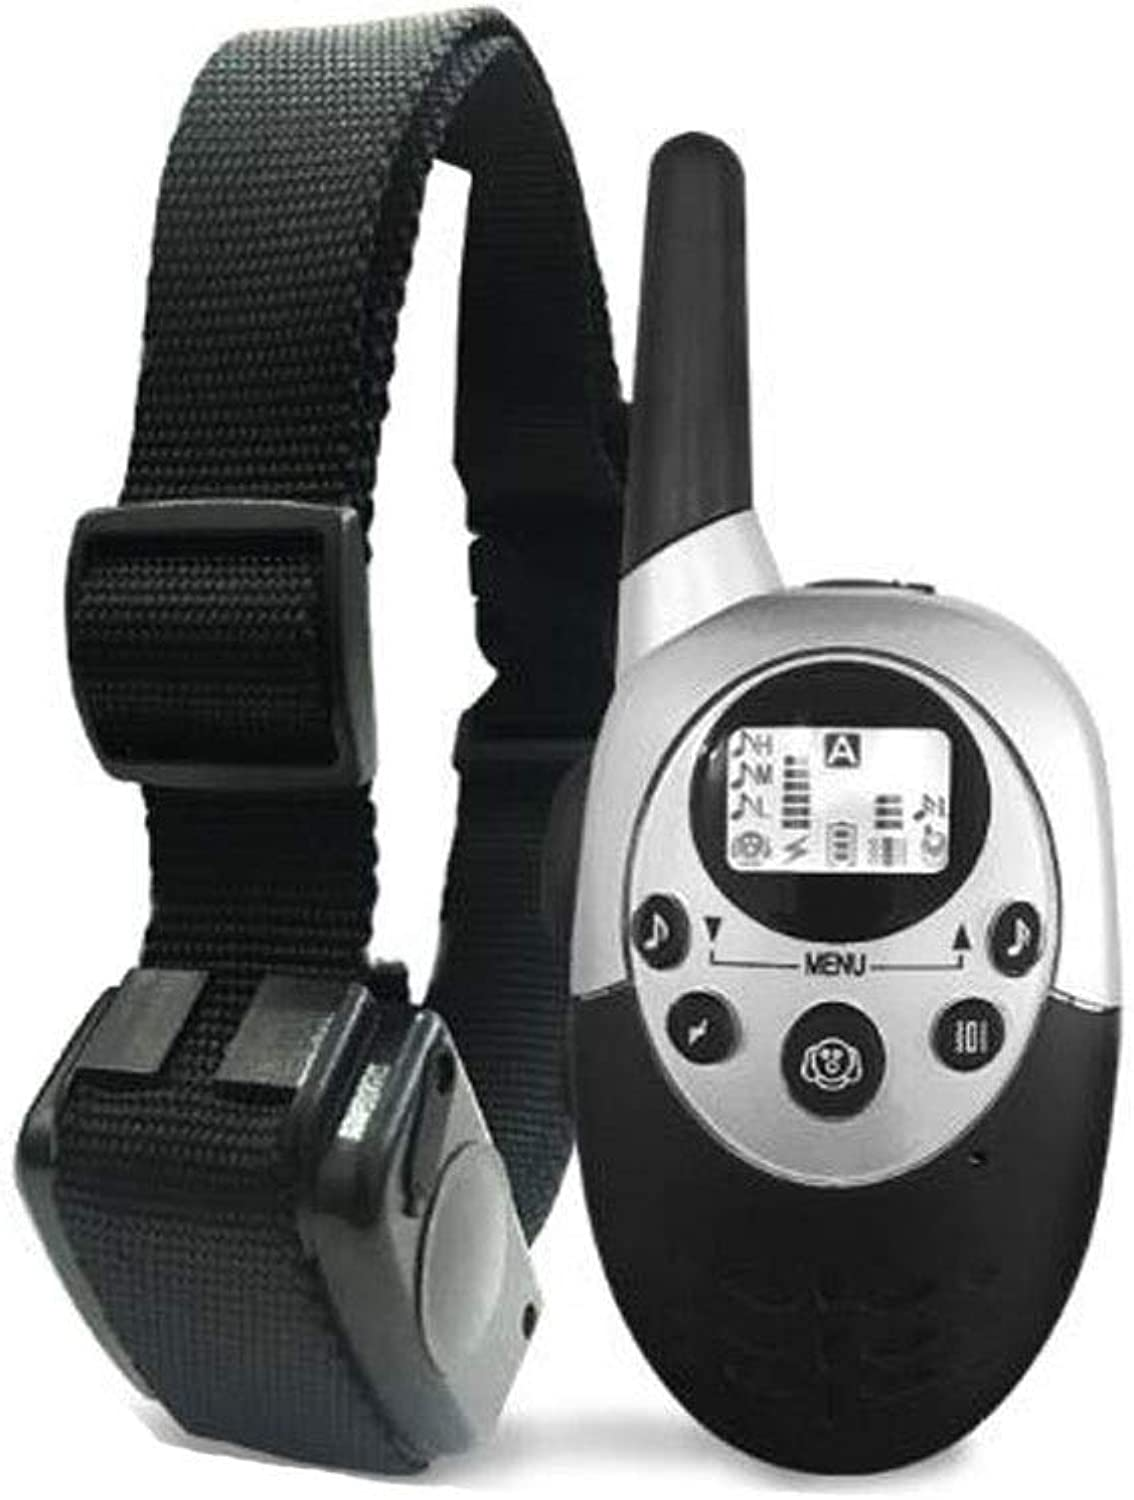 Dog Collar, 2019 Dog Shockproof Training Collar with Remote Control Rechargeable and IPX7 Waterproof, Suitable for Small, Medium and Large Dogs (color   Black, Size   3  6  4cm)